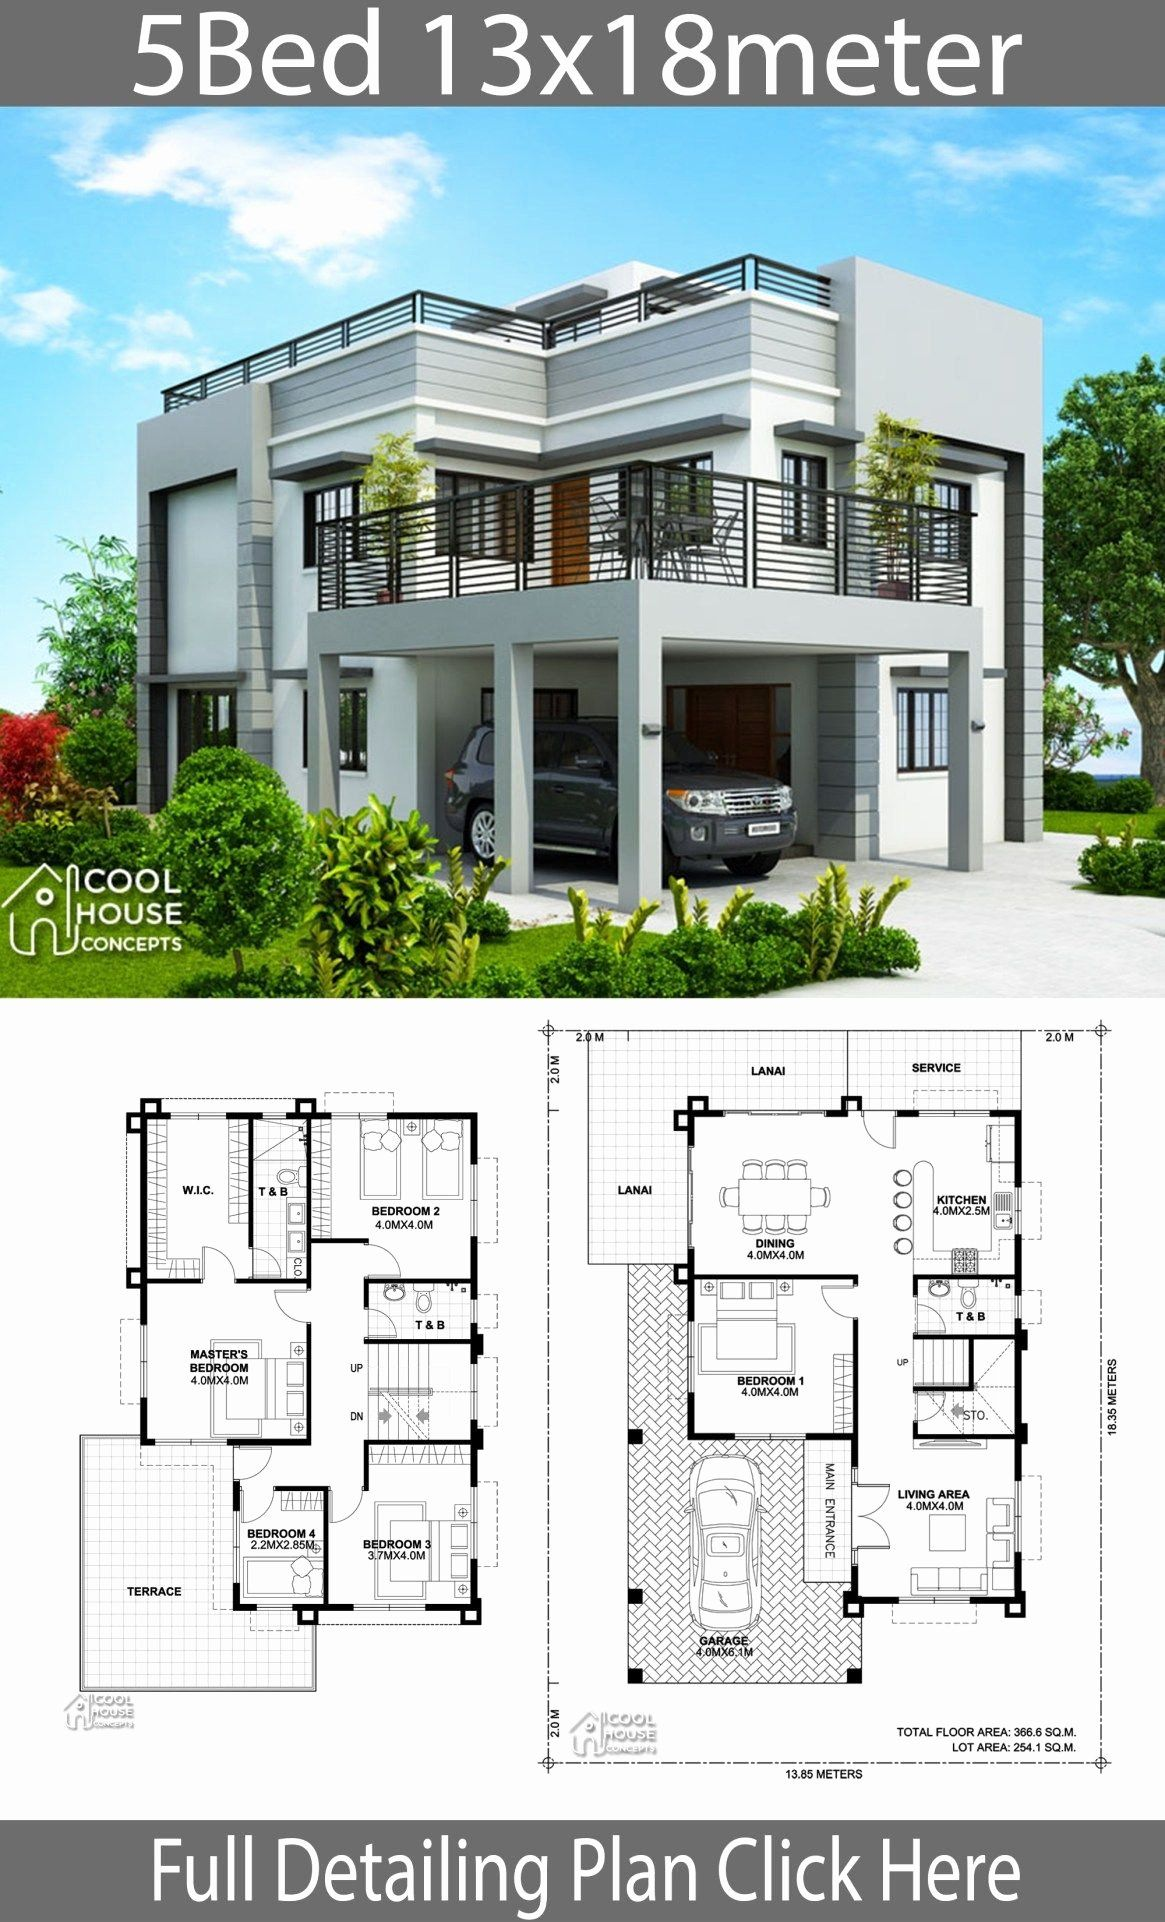 5 Bedroom Modern House Plans Inspirational Home Design Plan 13x18m With 5 Bedrooms In 2020 Model House Plan Duplex House Design House Architecture Design